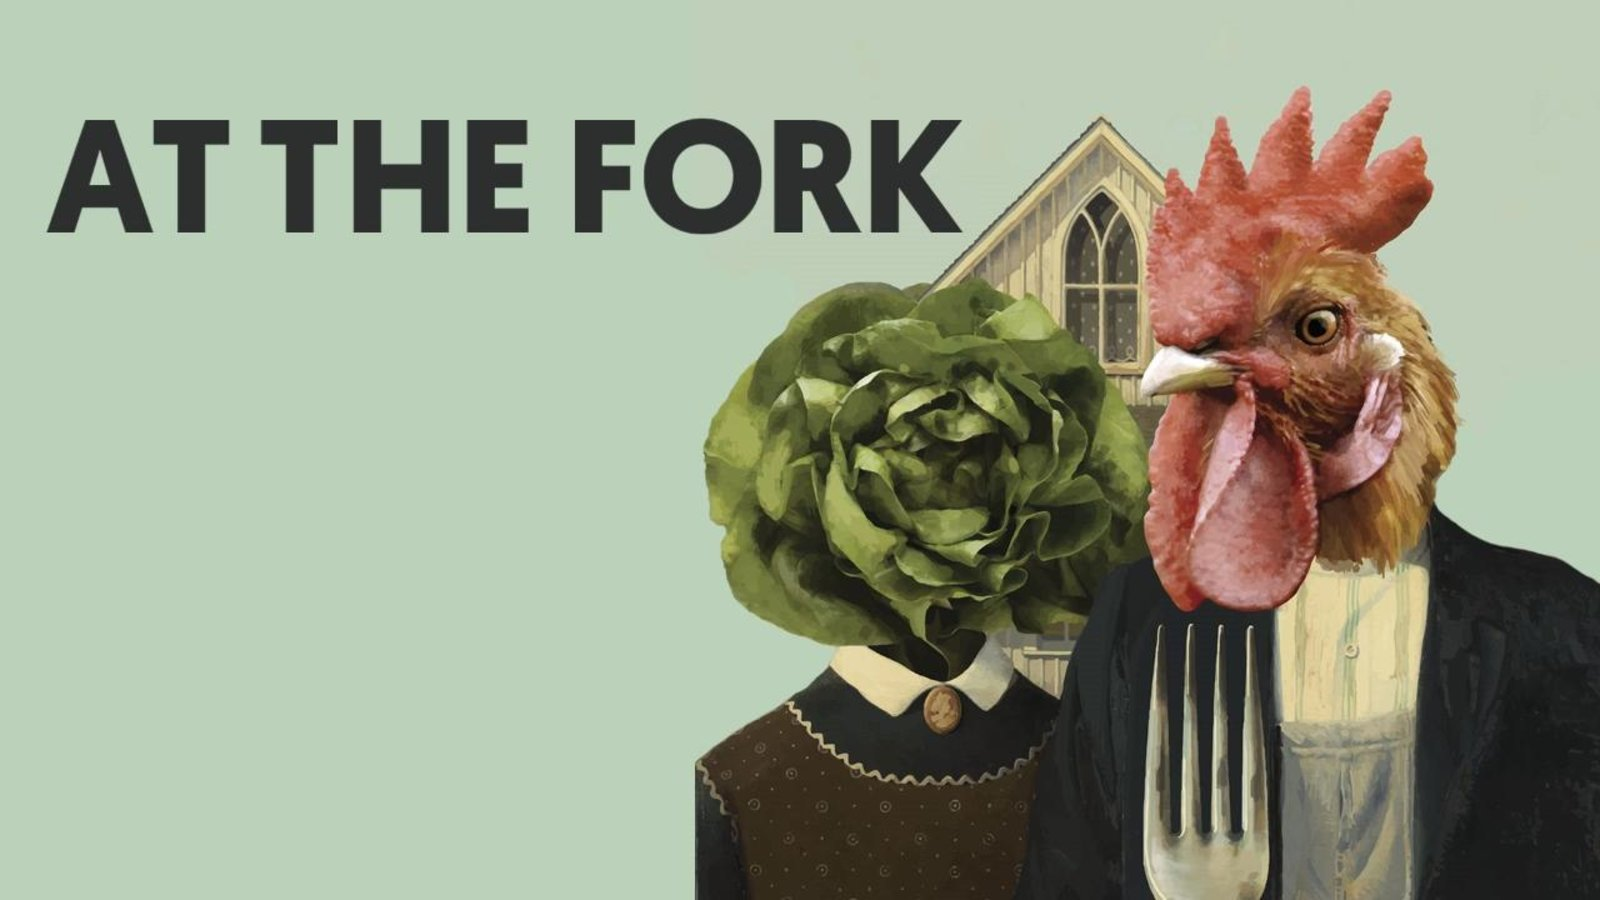 Vegan Movie poster for At The Fork a movie about animal husbandry showing a husband and wife with a lettuce head and a chicken head